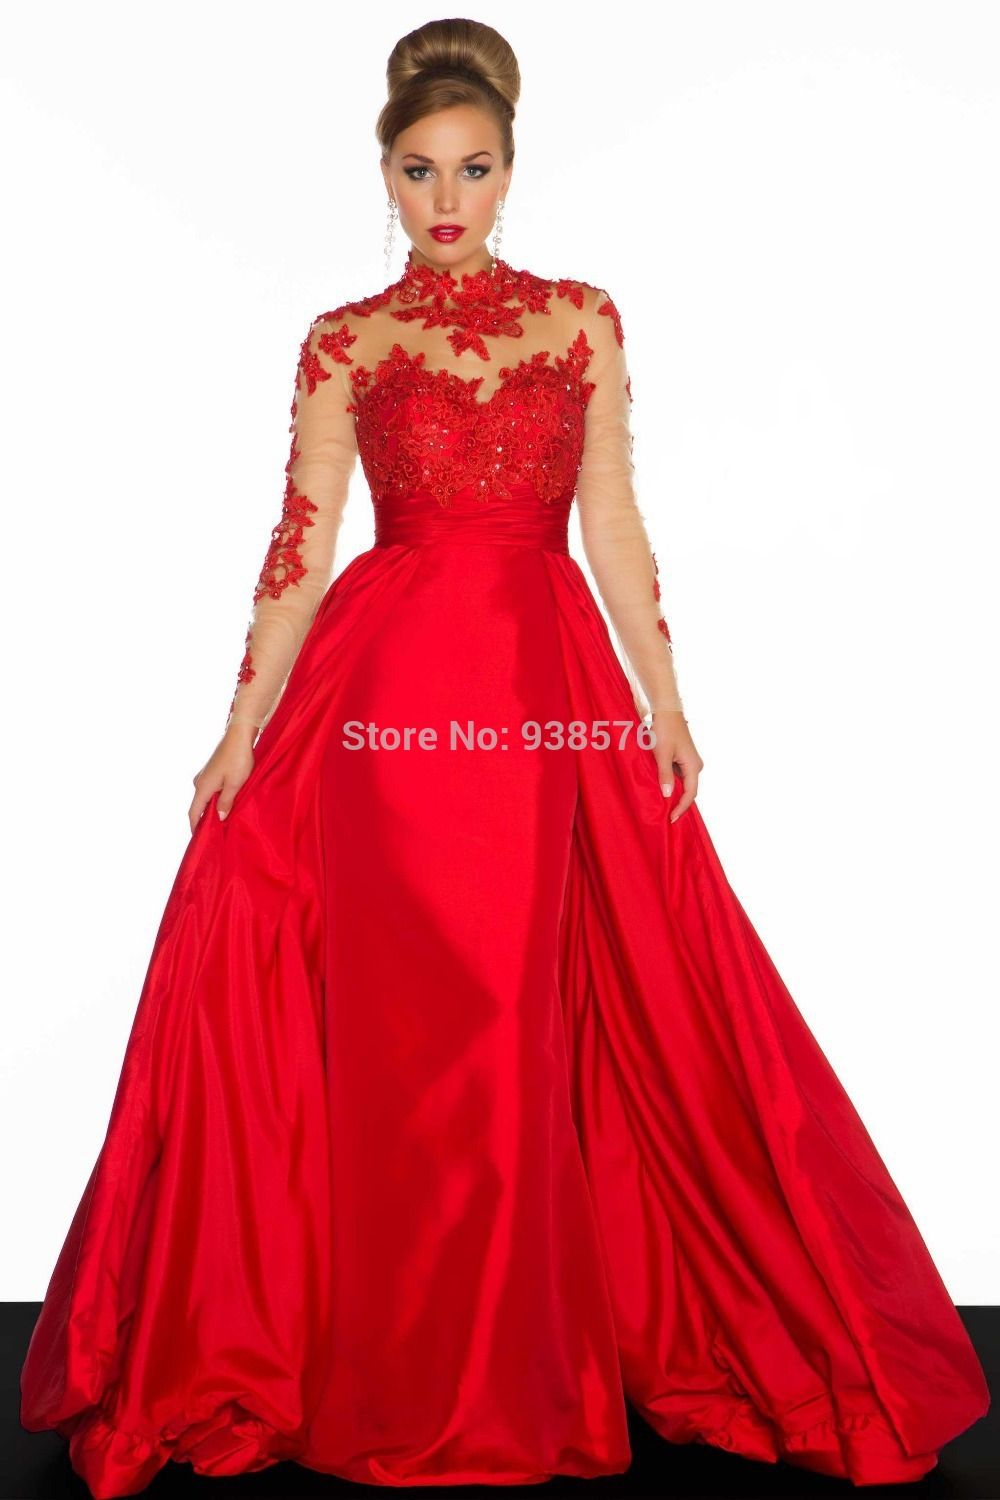 plus size formal dresses with sleeves - Google Search ...